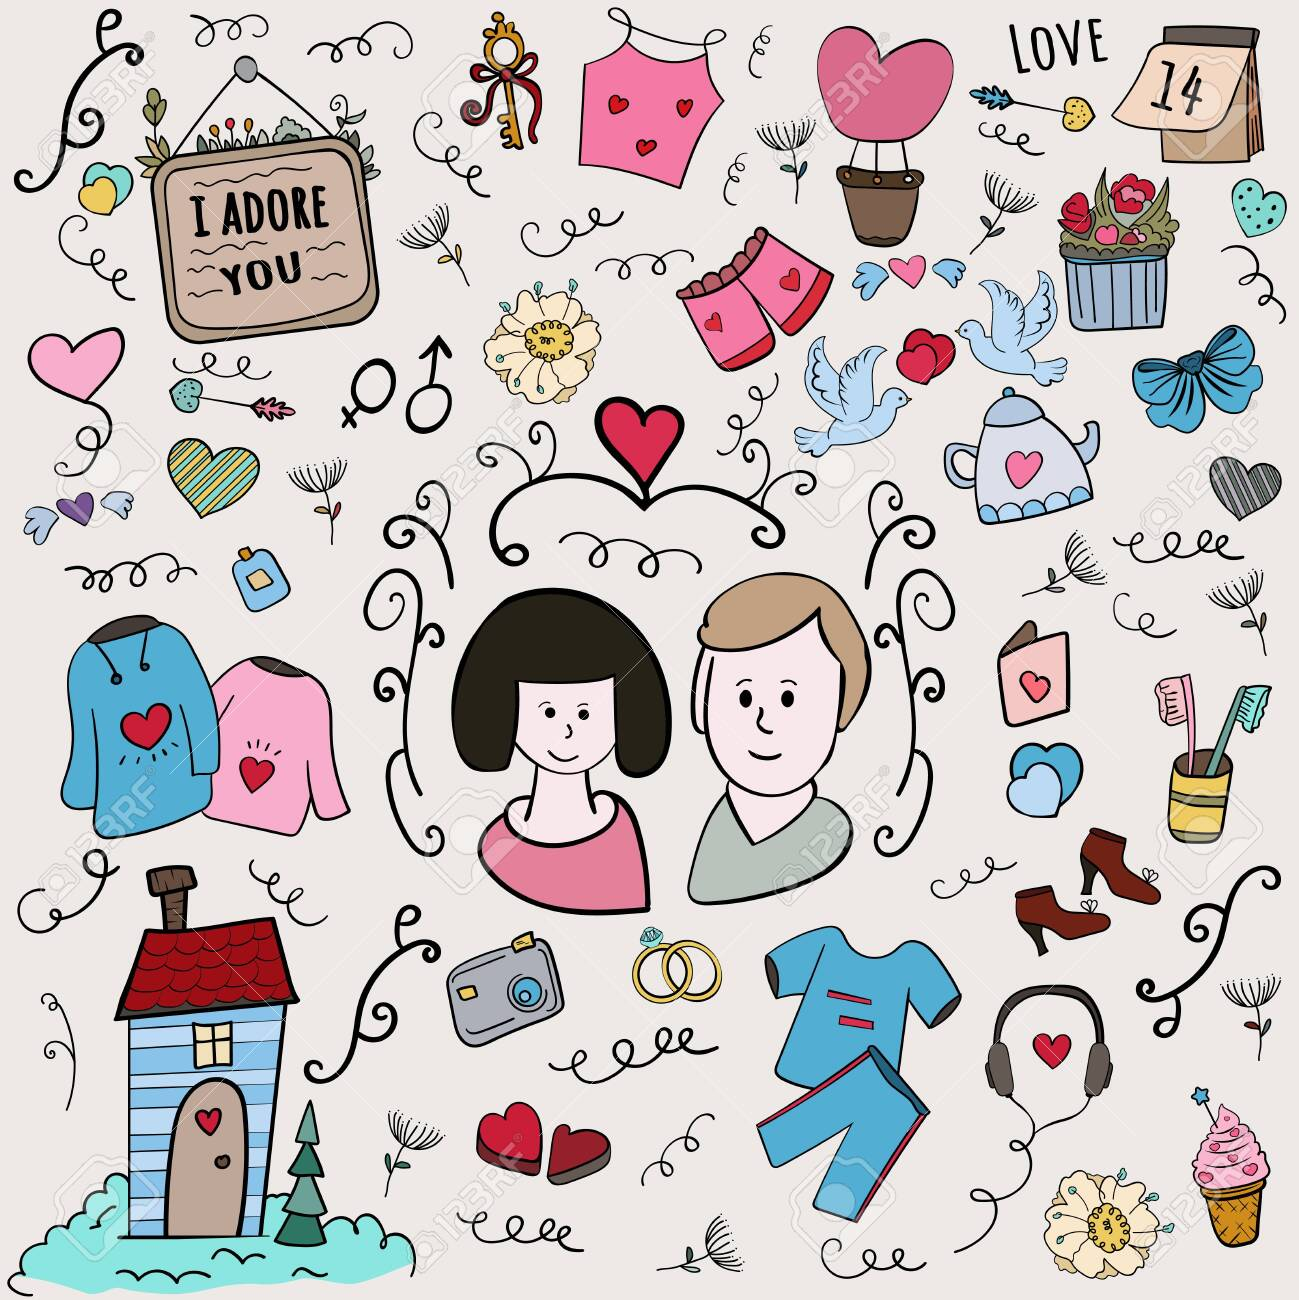 Scrap Set Color Illustration A Love Story Set Vector Doodle Royalty Free Cliparts Vectors And Stock Illustration Image 137723188